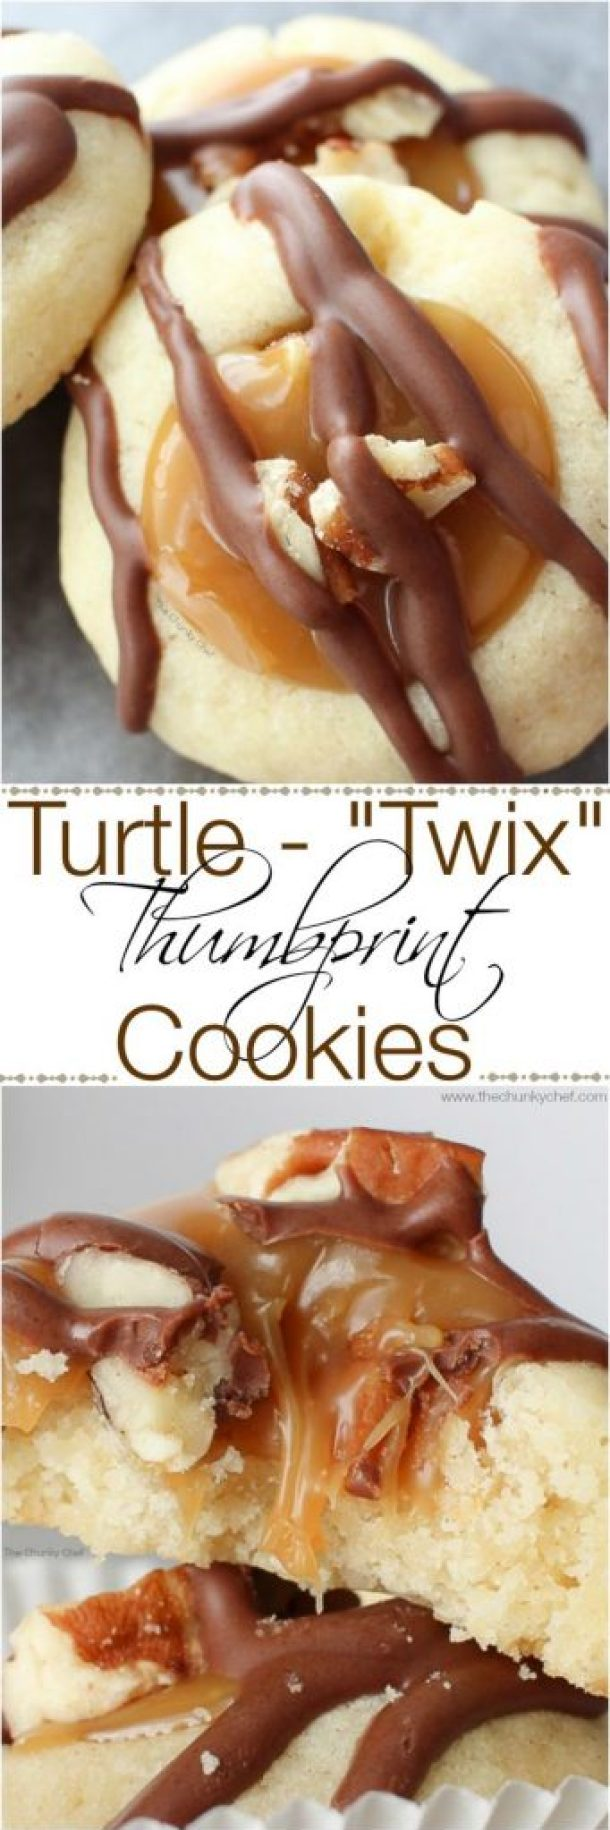 Turtle-Twix Thumbprint Cookies Recipe | The Chunky Chef